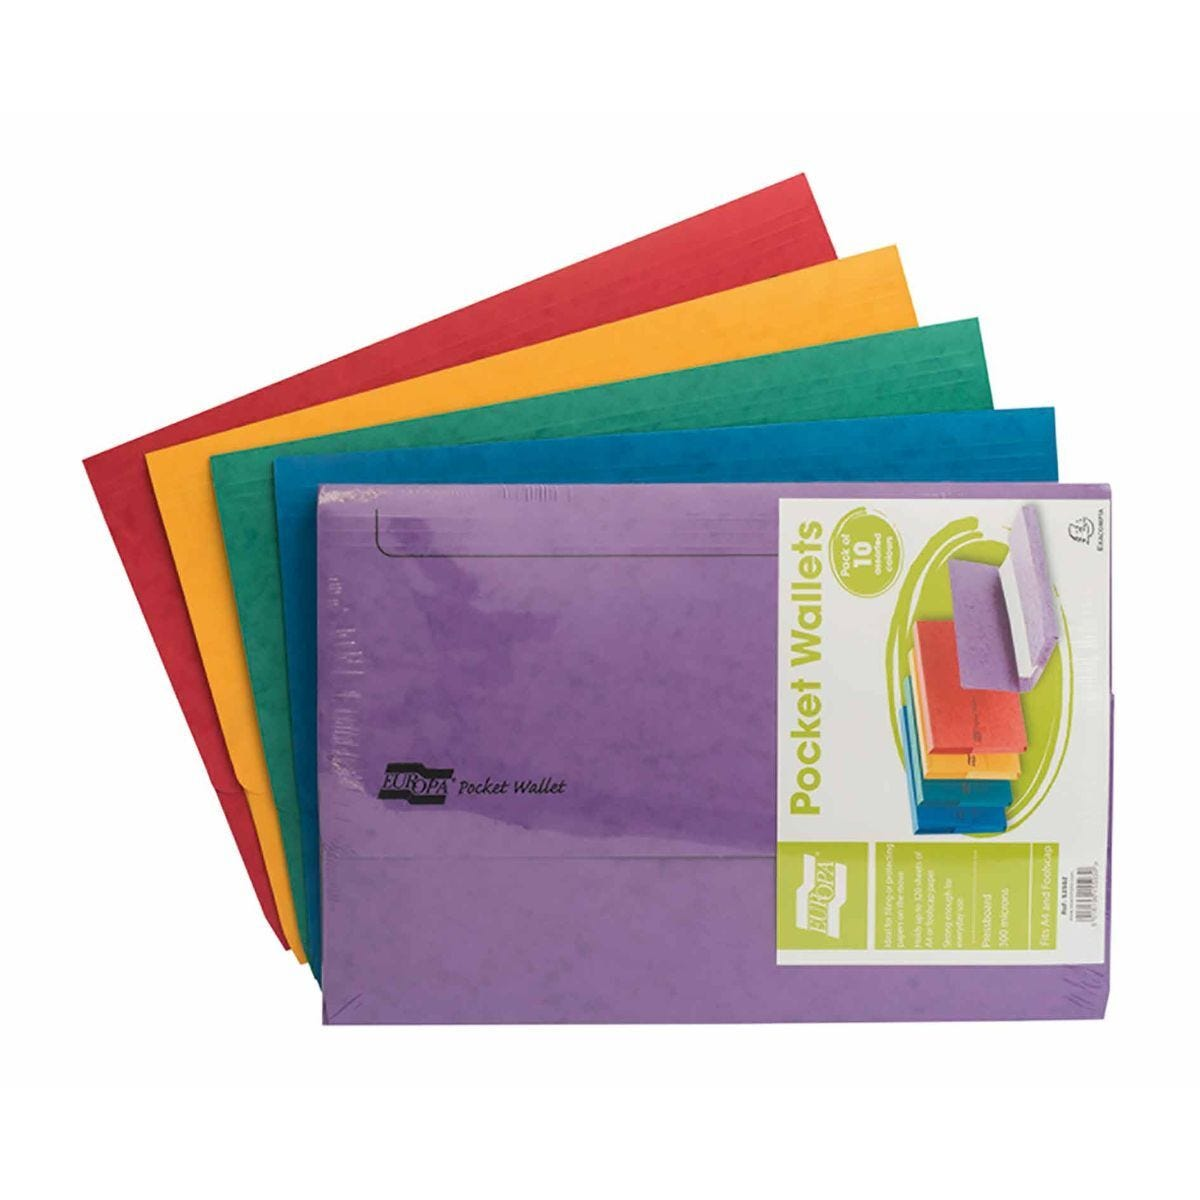 Exacompta Europa Document Wallets A4 5 Packs of 10 265gsm Assorted